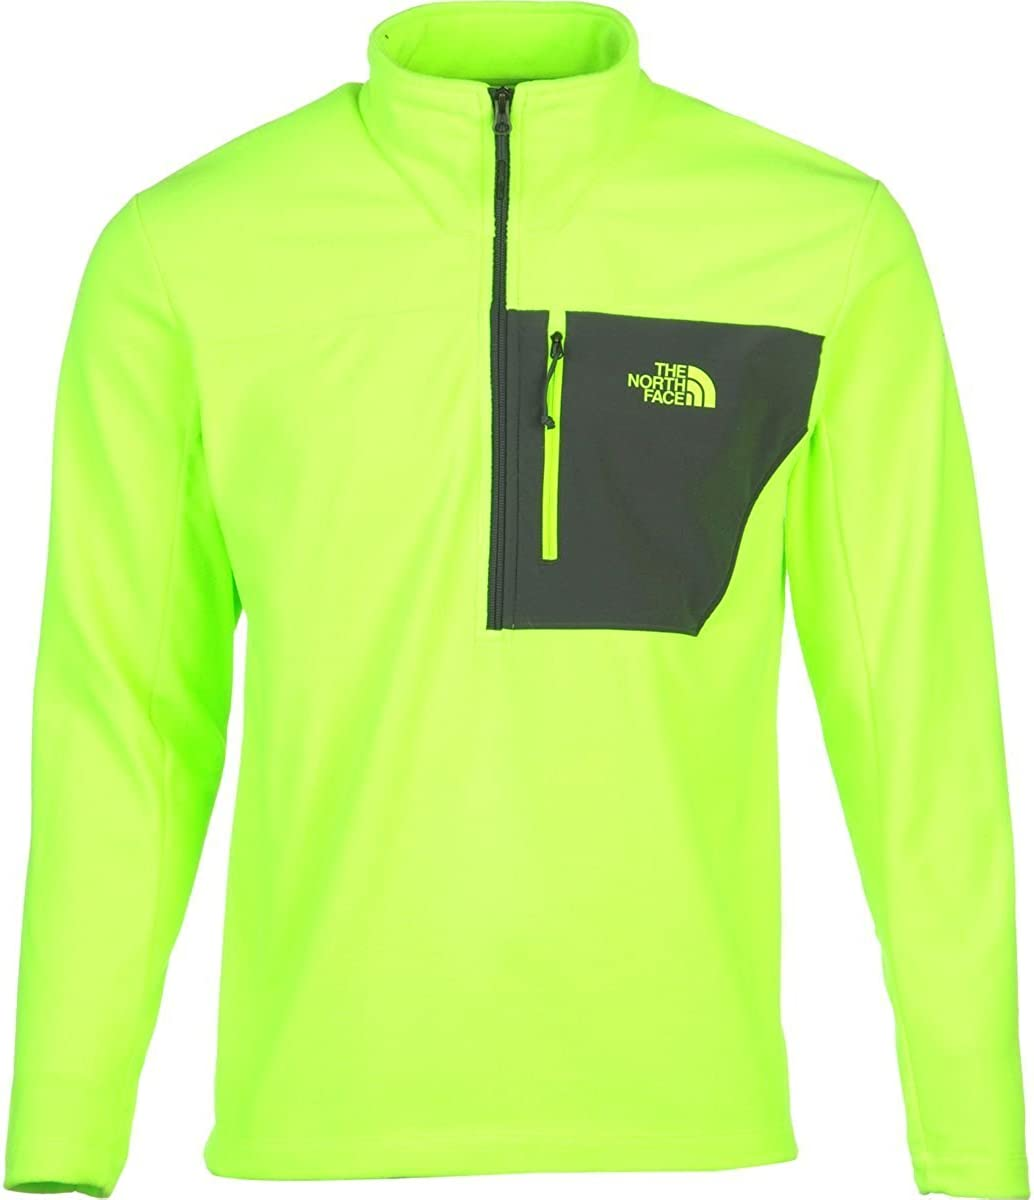 The North Face TECH 100 Hybrid Jacket